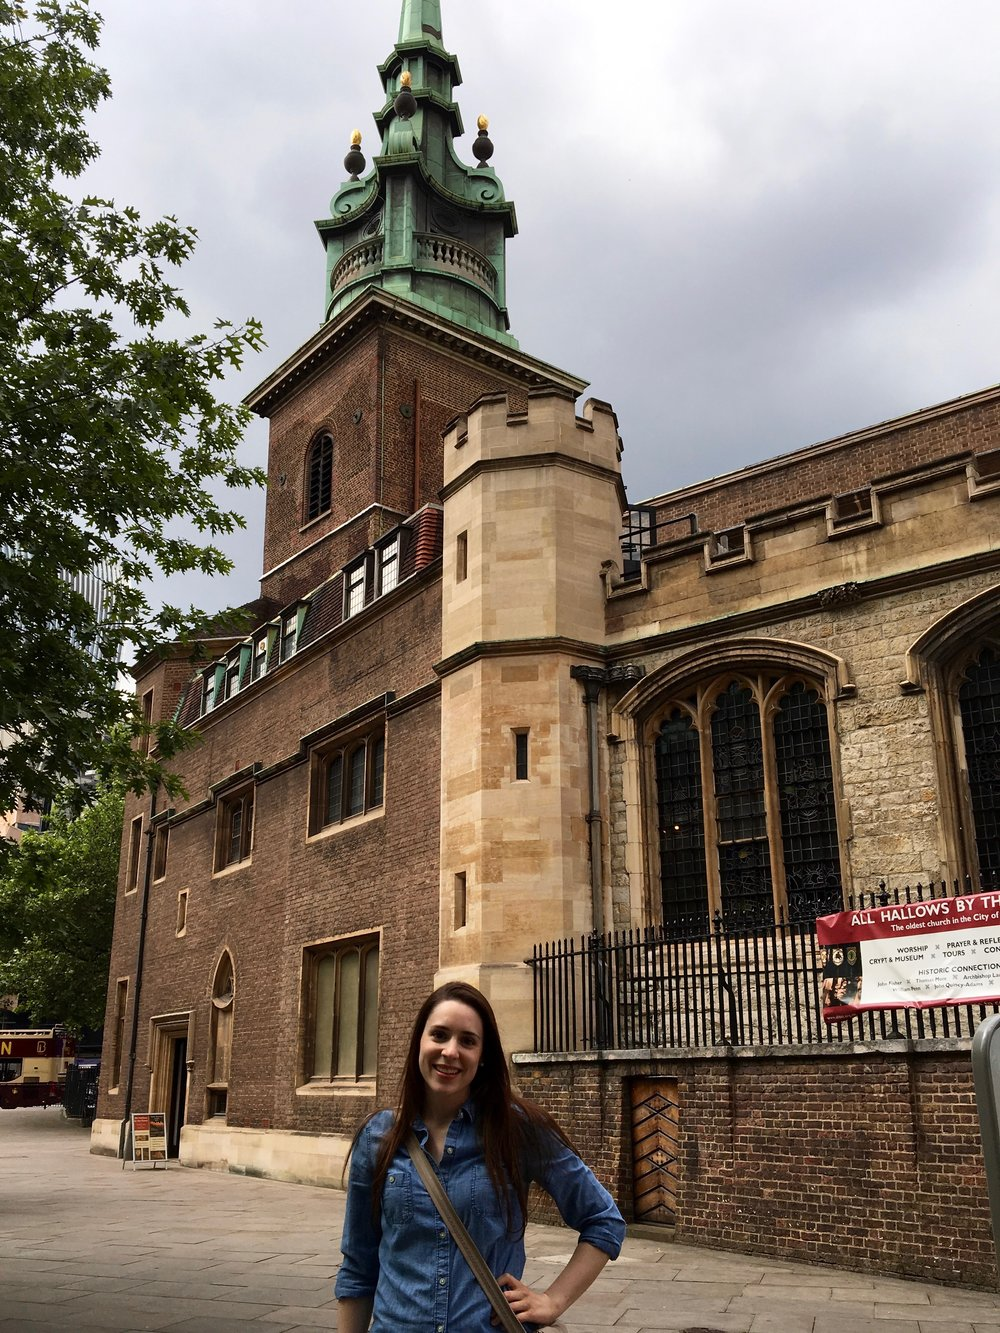 Just standing in front of the oldest church building in London, taking credit for my distant relative's heroic acts